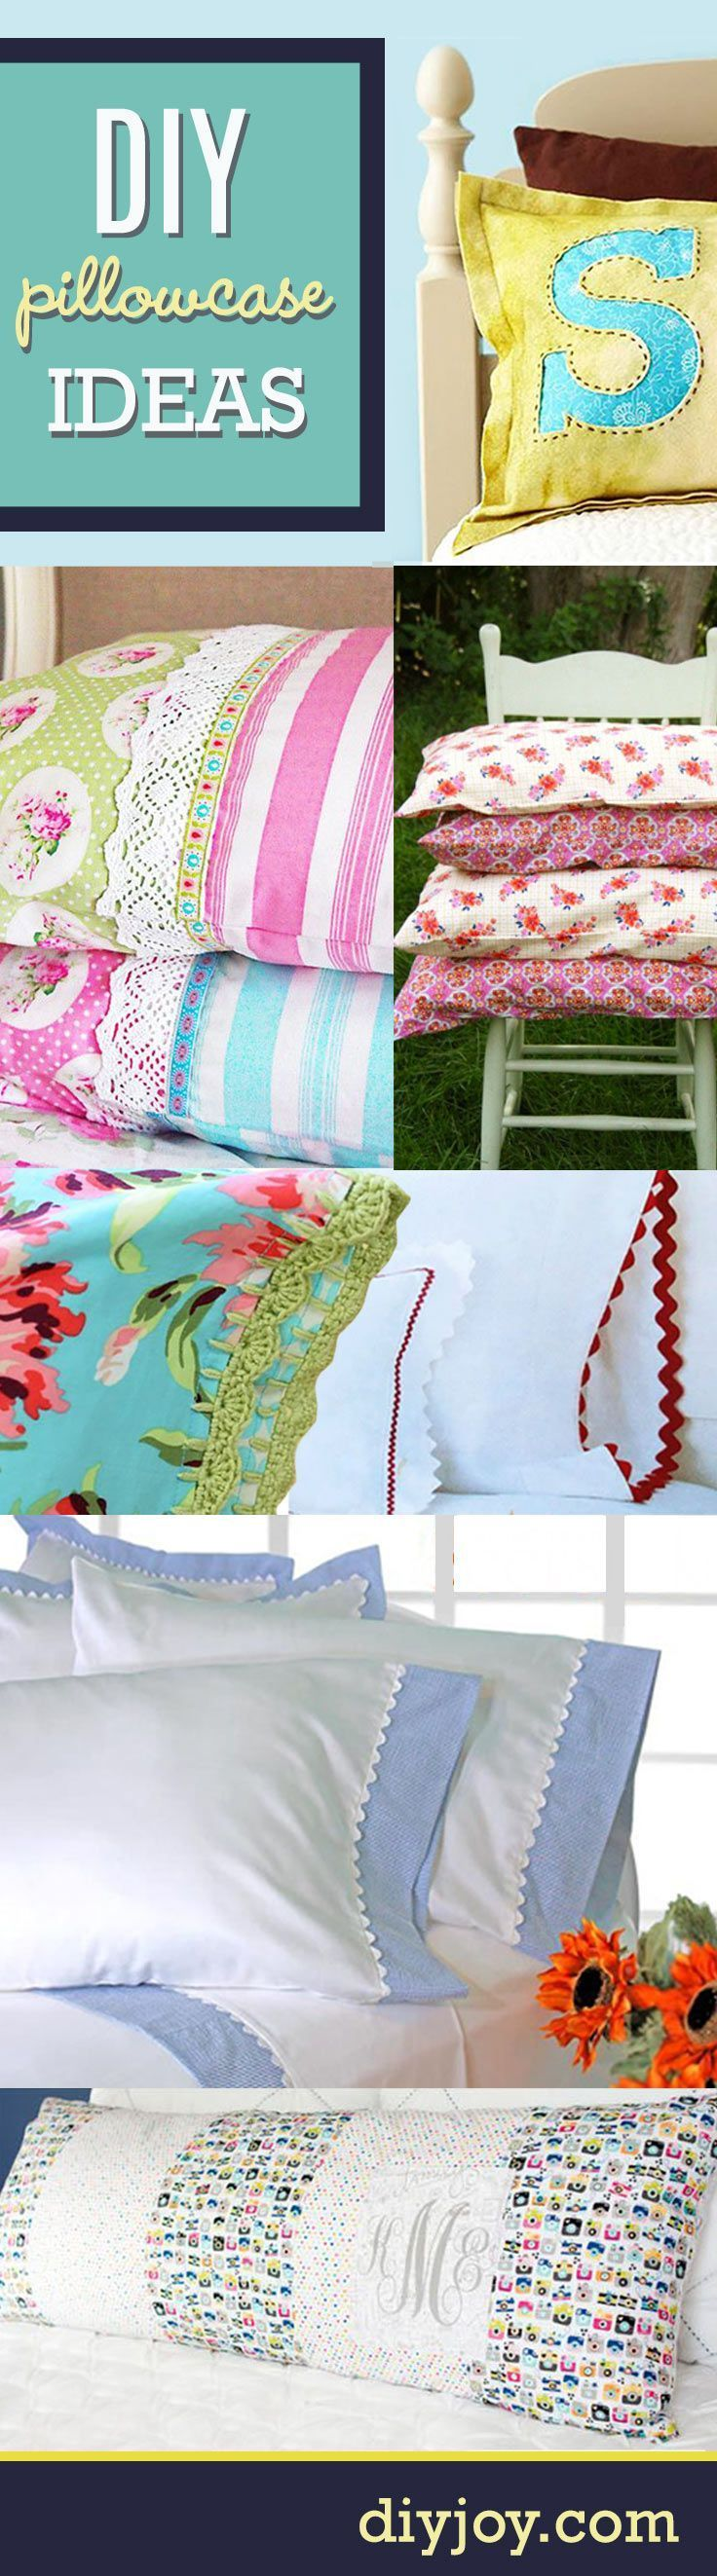 DIY Projects for the Home - Sewing Ideas for the Bedroom   DIY Pillowcase Ideas and Sewing Tutorials